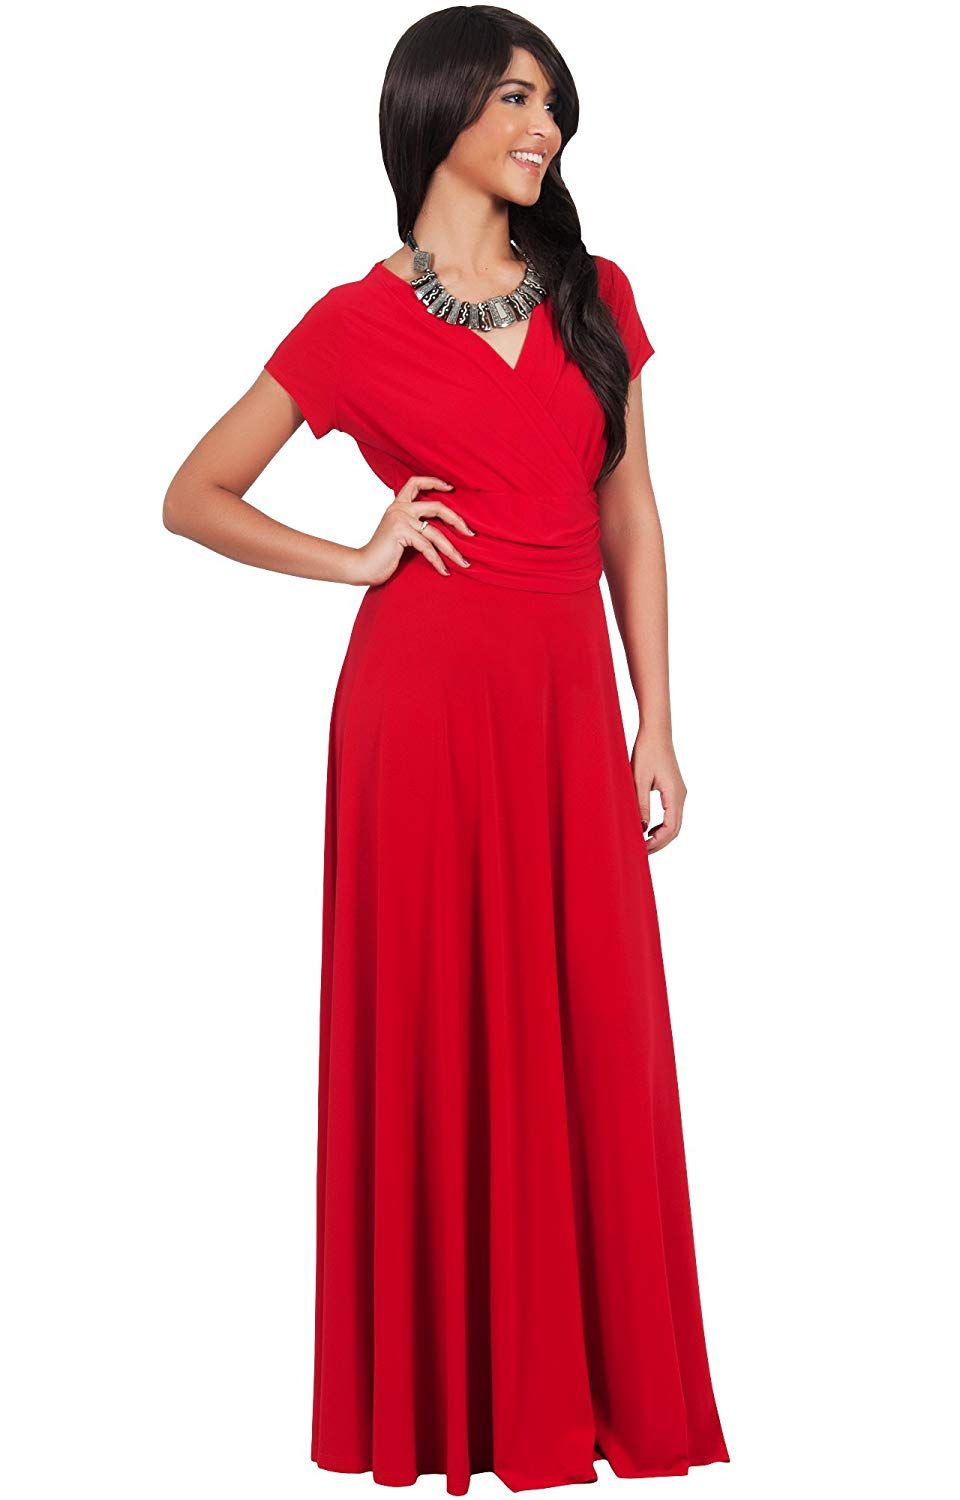 Modest long maxi bridesmaid dresses with short sleeves lds teen